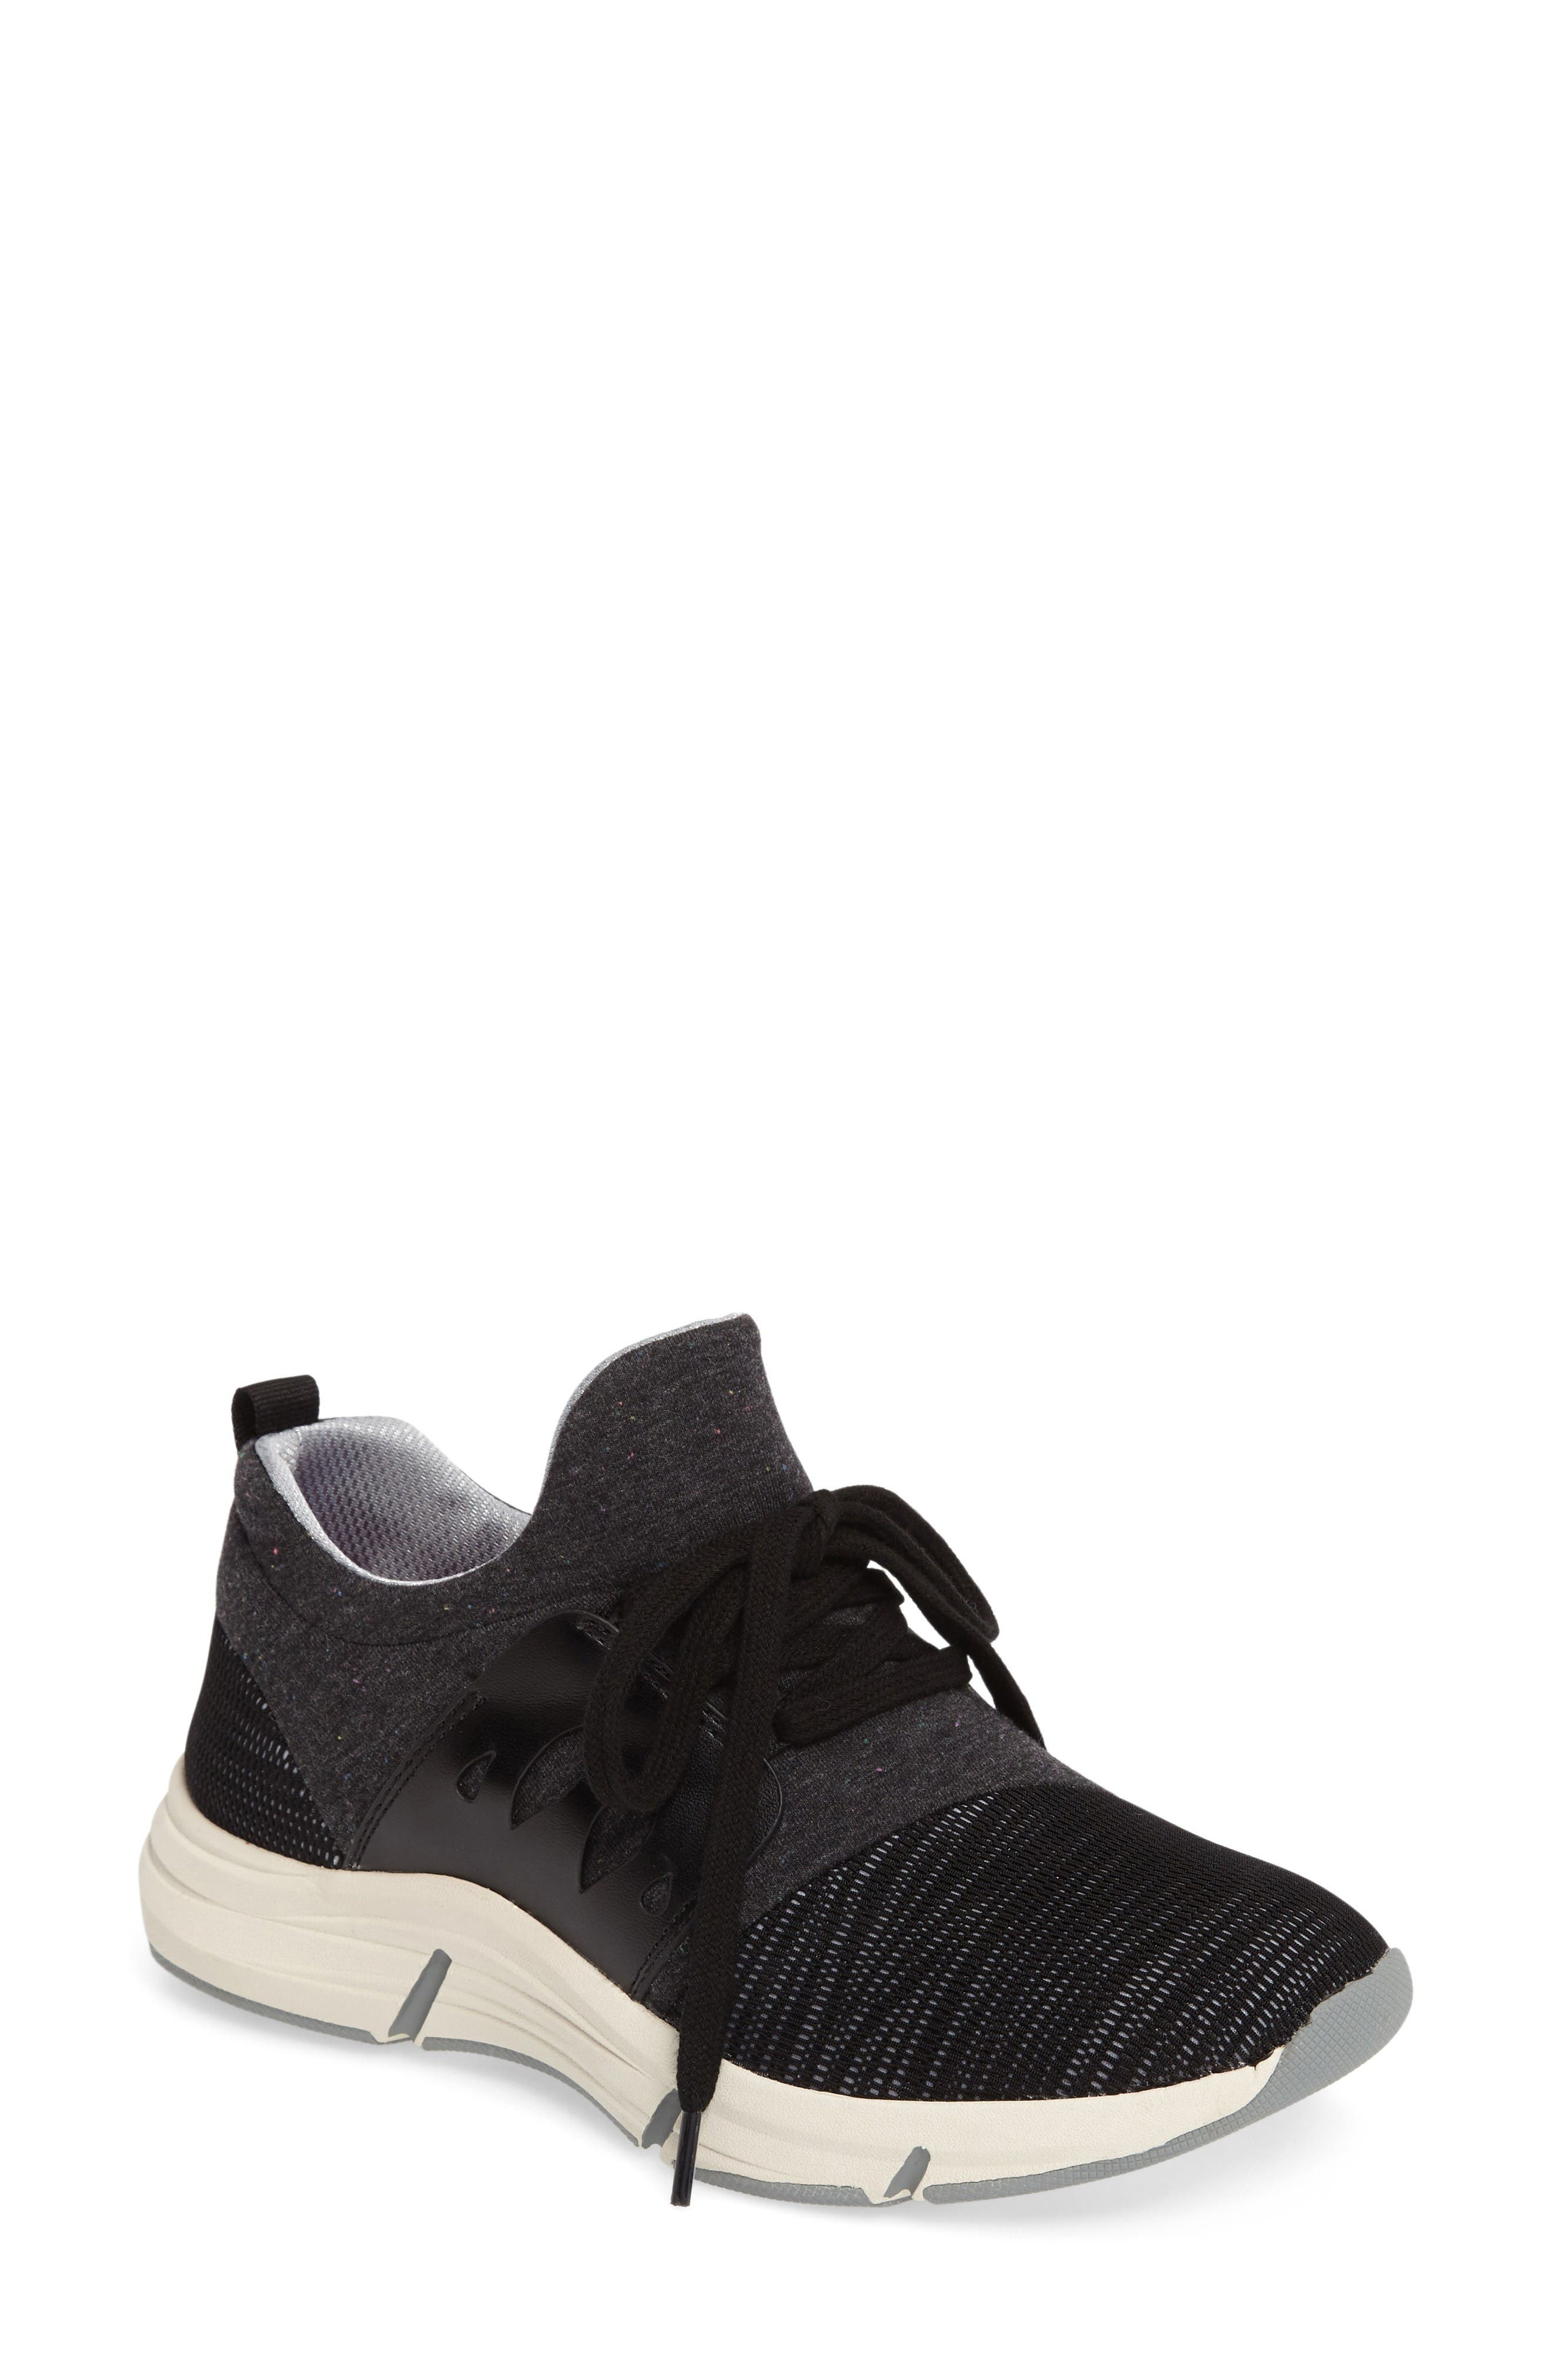 Ordell Sneaker,                             Main thumbnail 1, color,                             Black Fabric